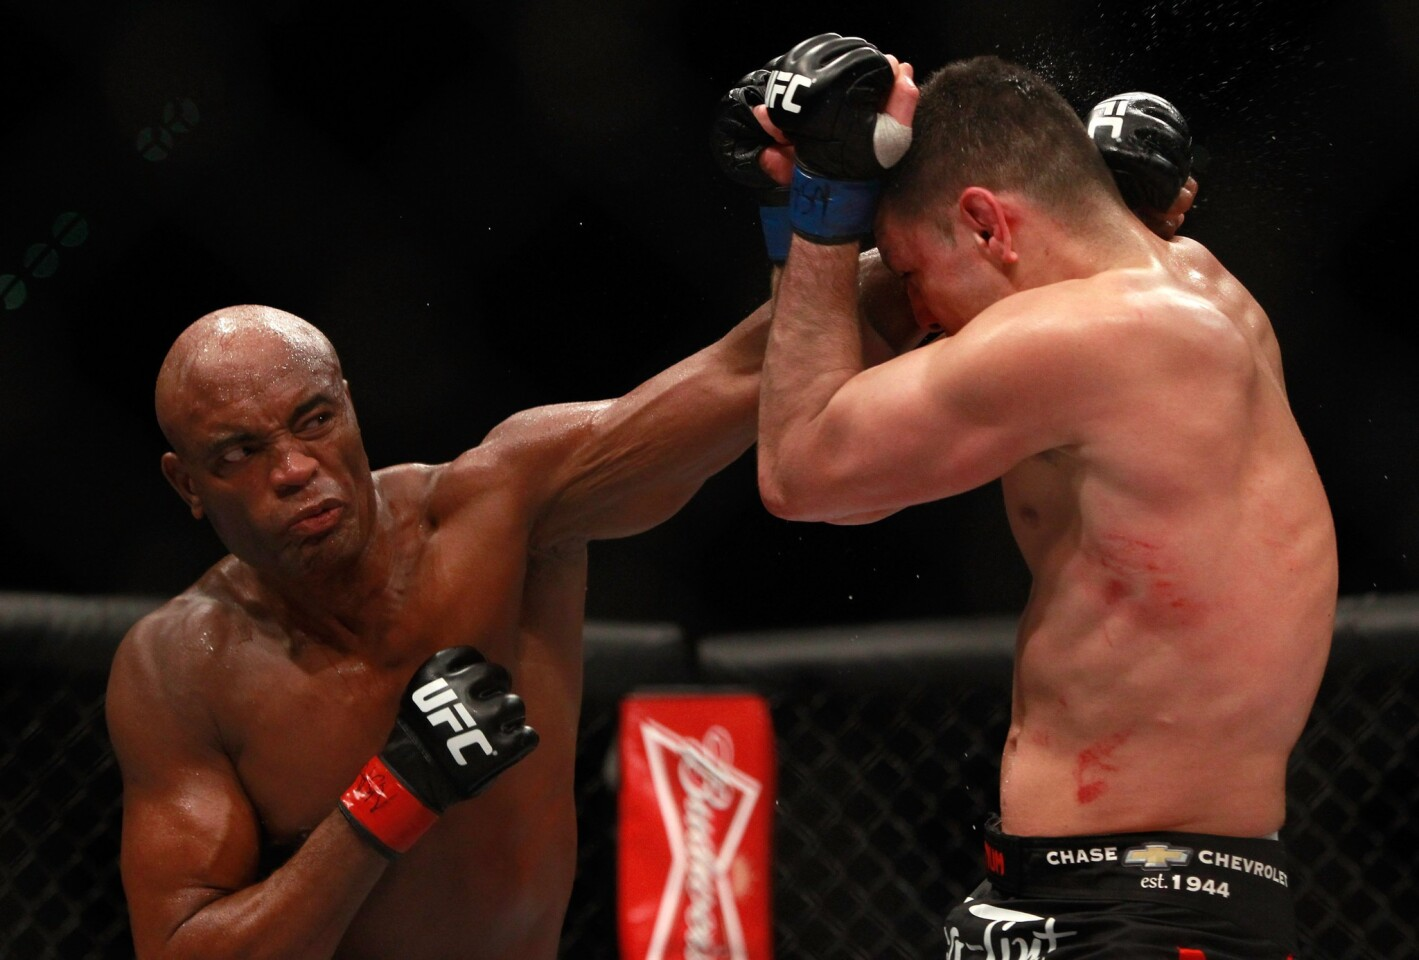 Anderson Silva lands a punch against Nick Diaz during their middleweight fight at UFC 183 on Saturday night at the MGM Grand Garden Arena in Las Vegas.